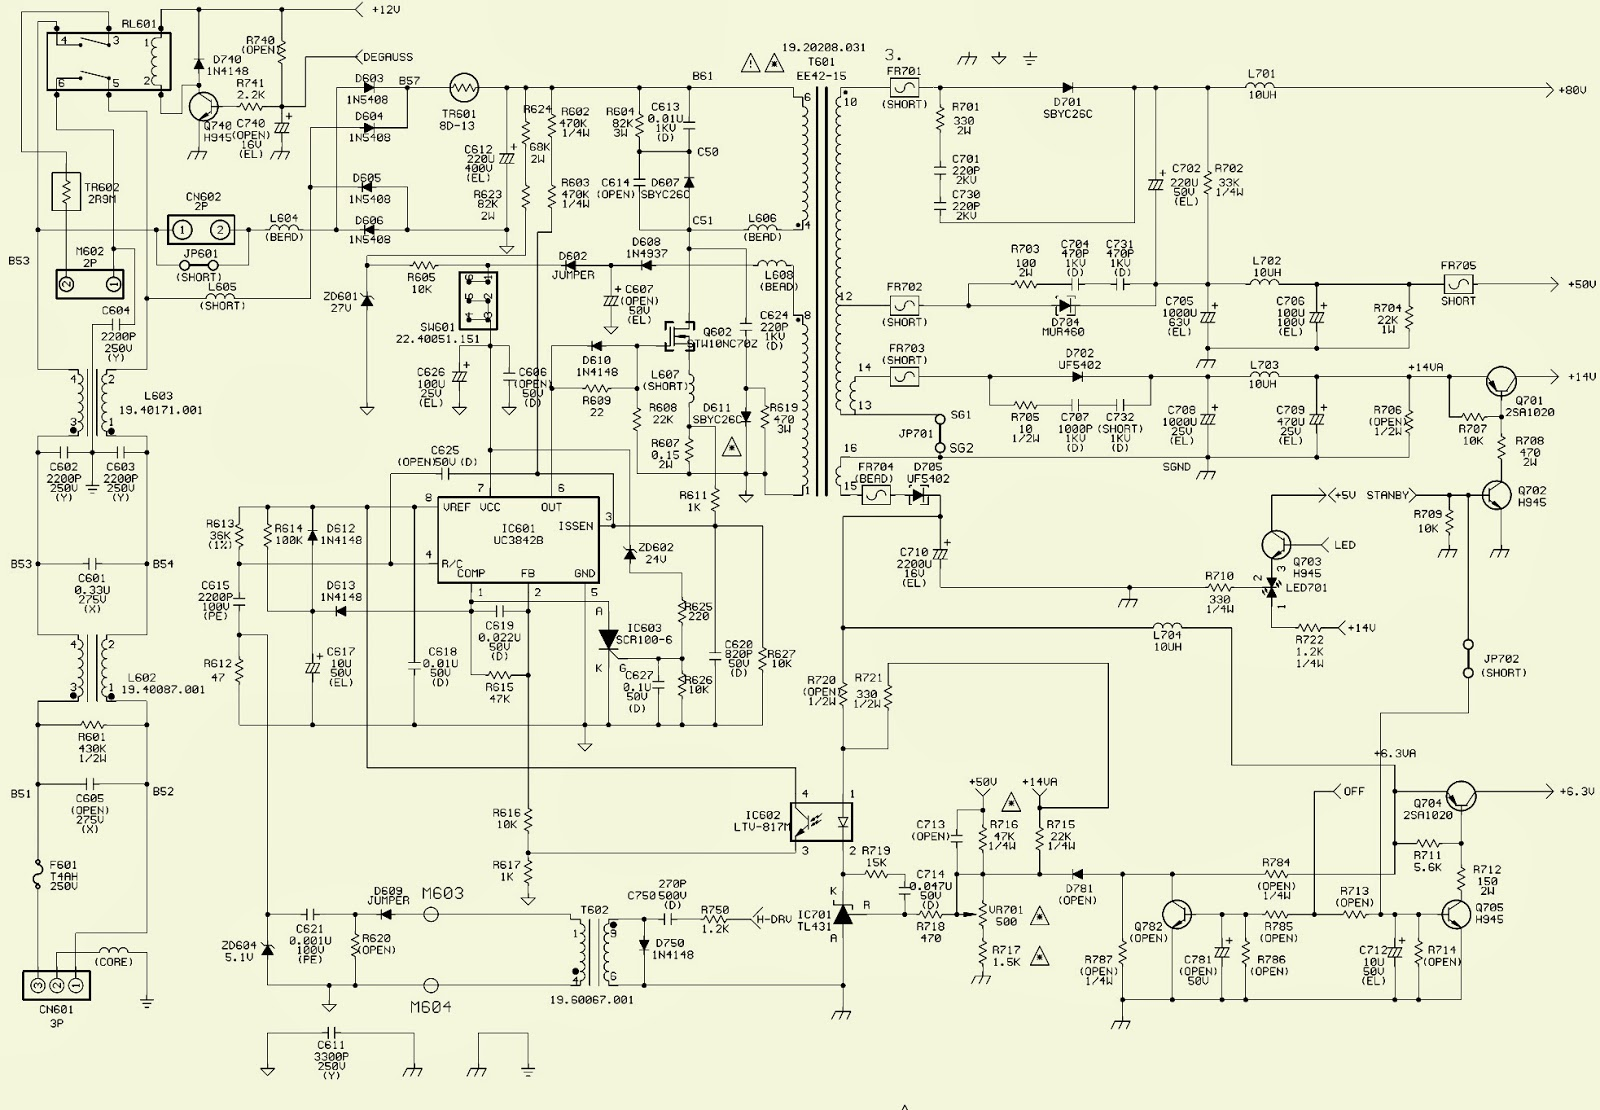 acer benq 17 crt monitor mts1786 horizontal out smps rh electronicshelponline blogspot com 3-Way Switch Wiring Diagram Basic Electrical Schematic Diagrams